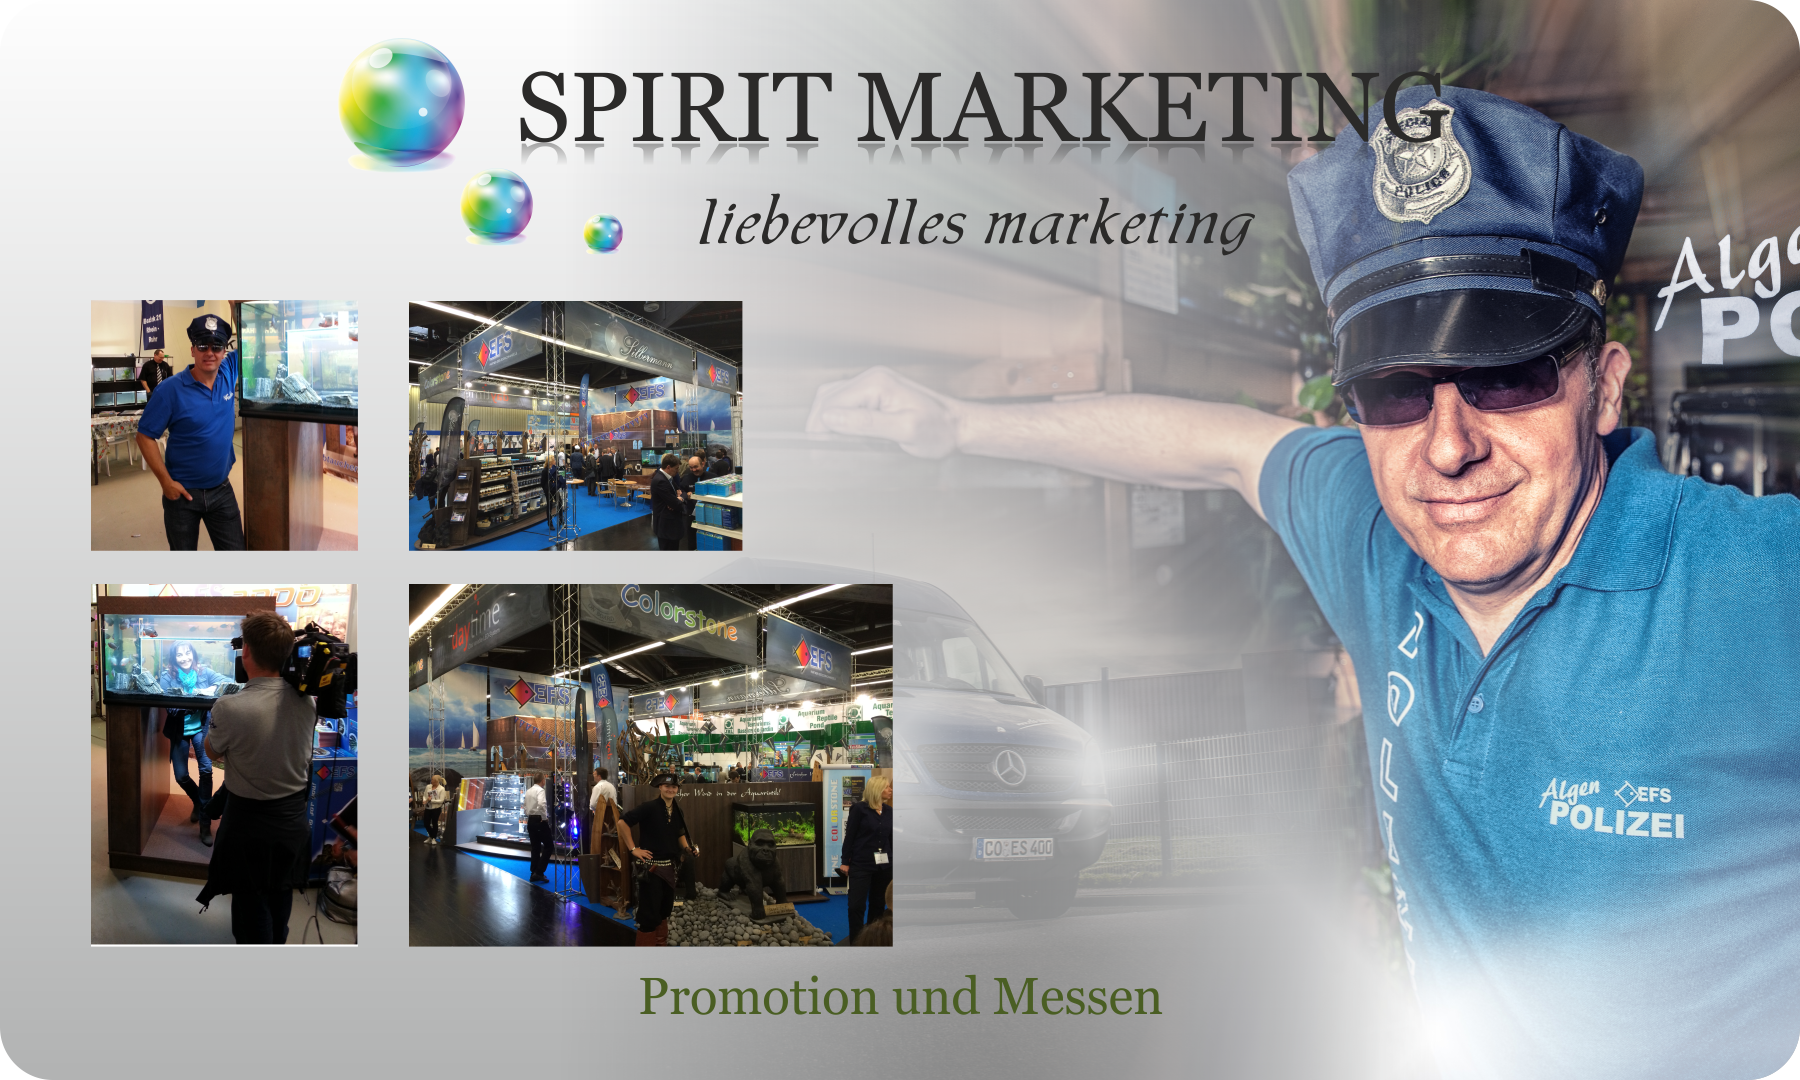 SPIRIT MARKETING - Promotion und Messen